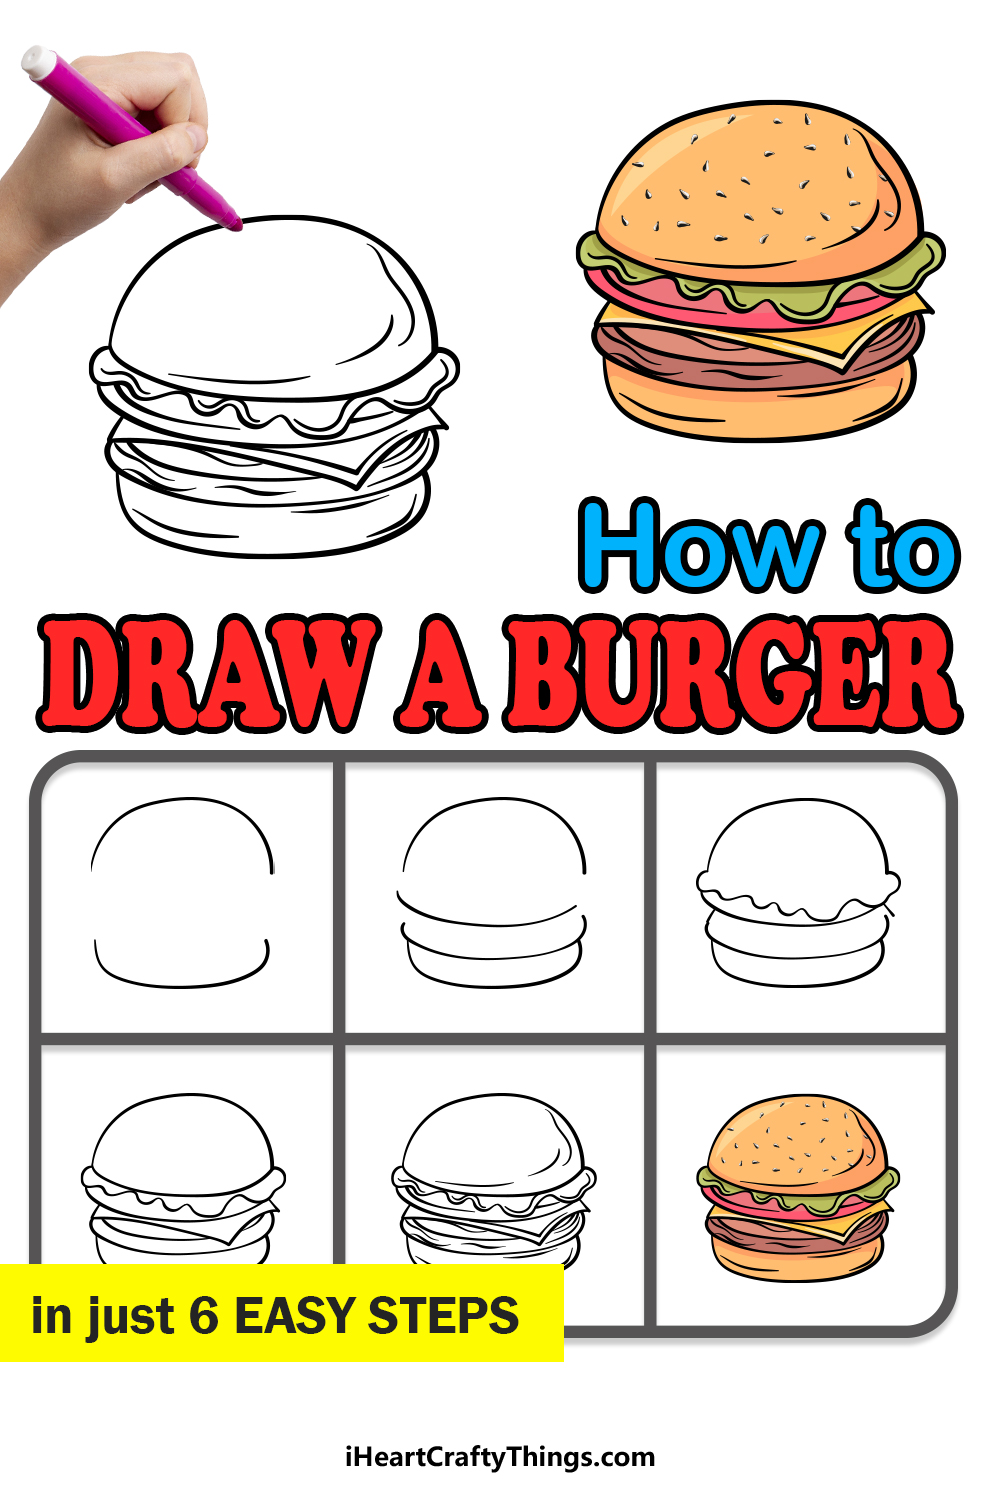 how to draw a burger in 6 easy steps